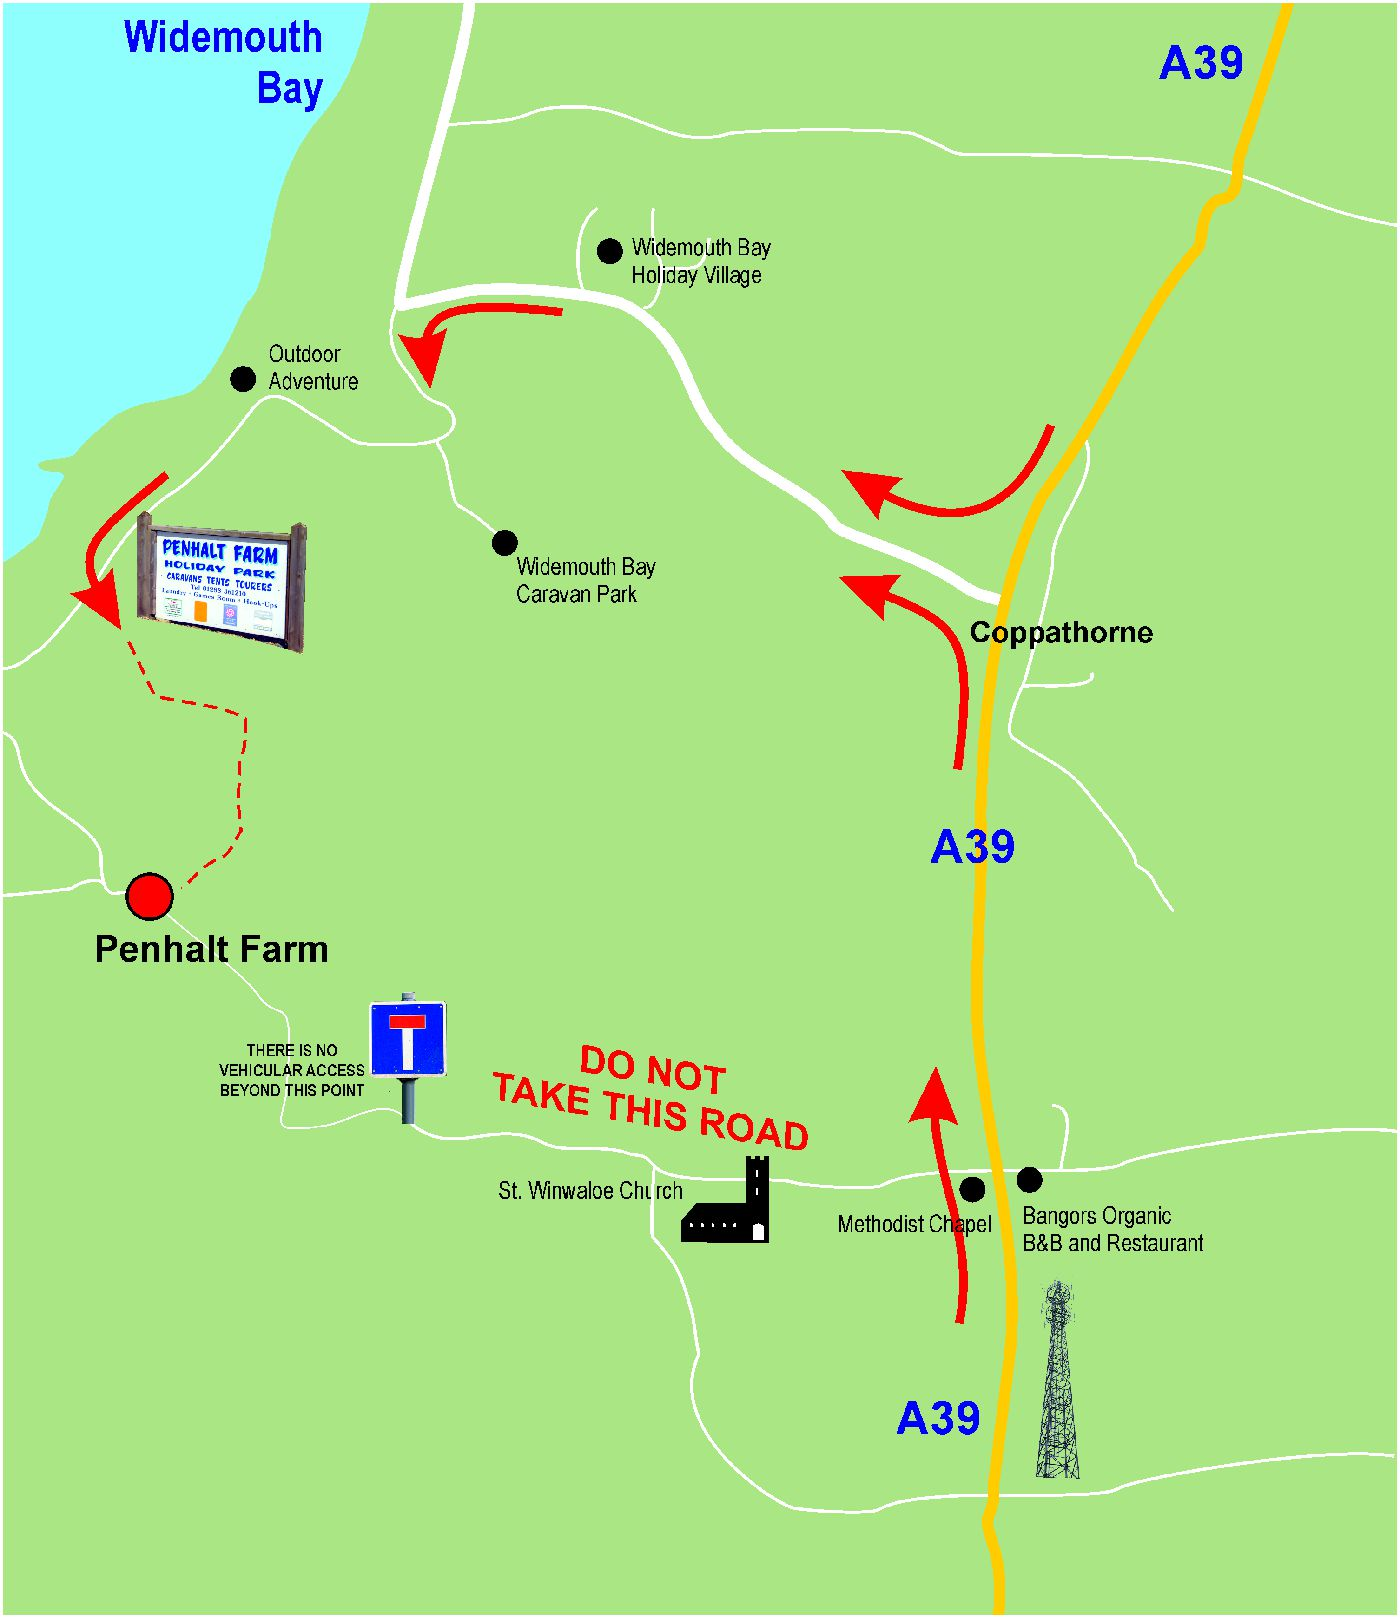 directions to penhalt farm